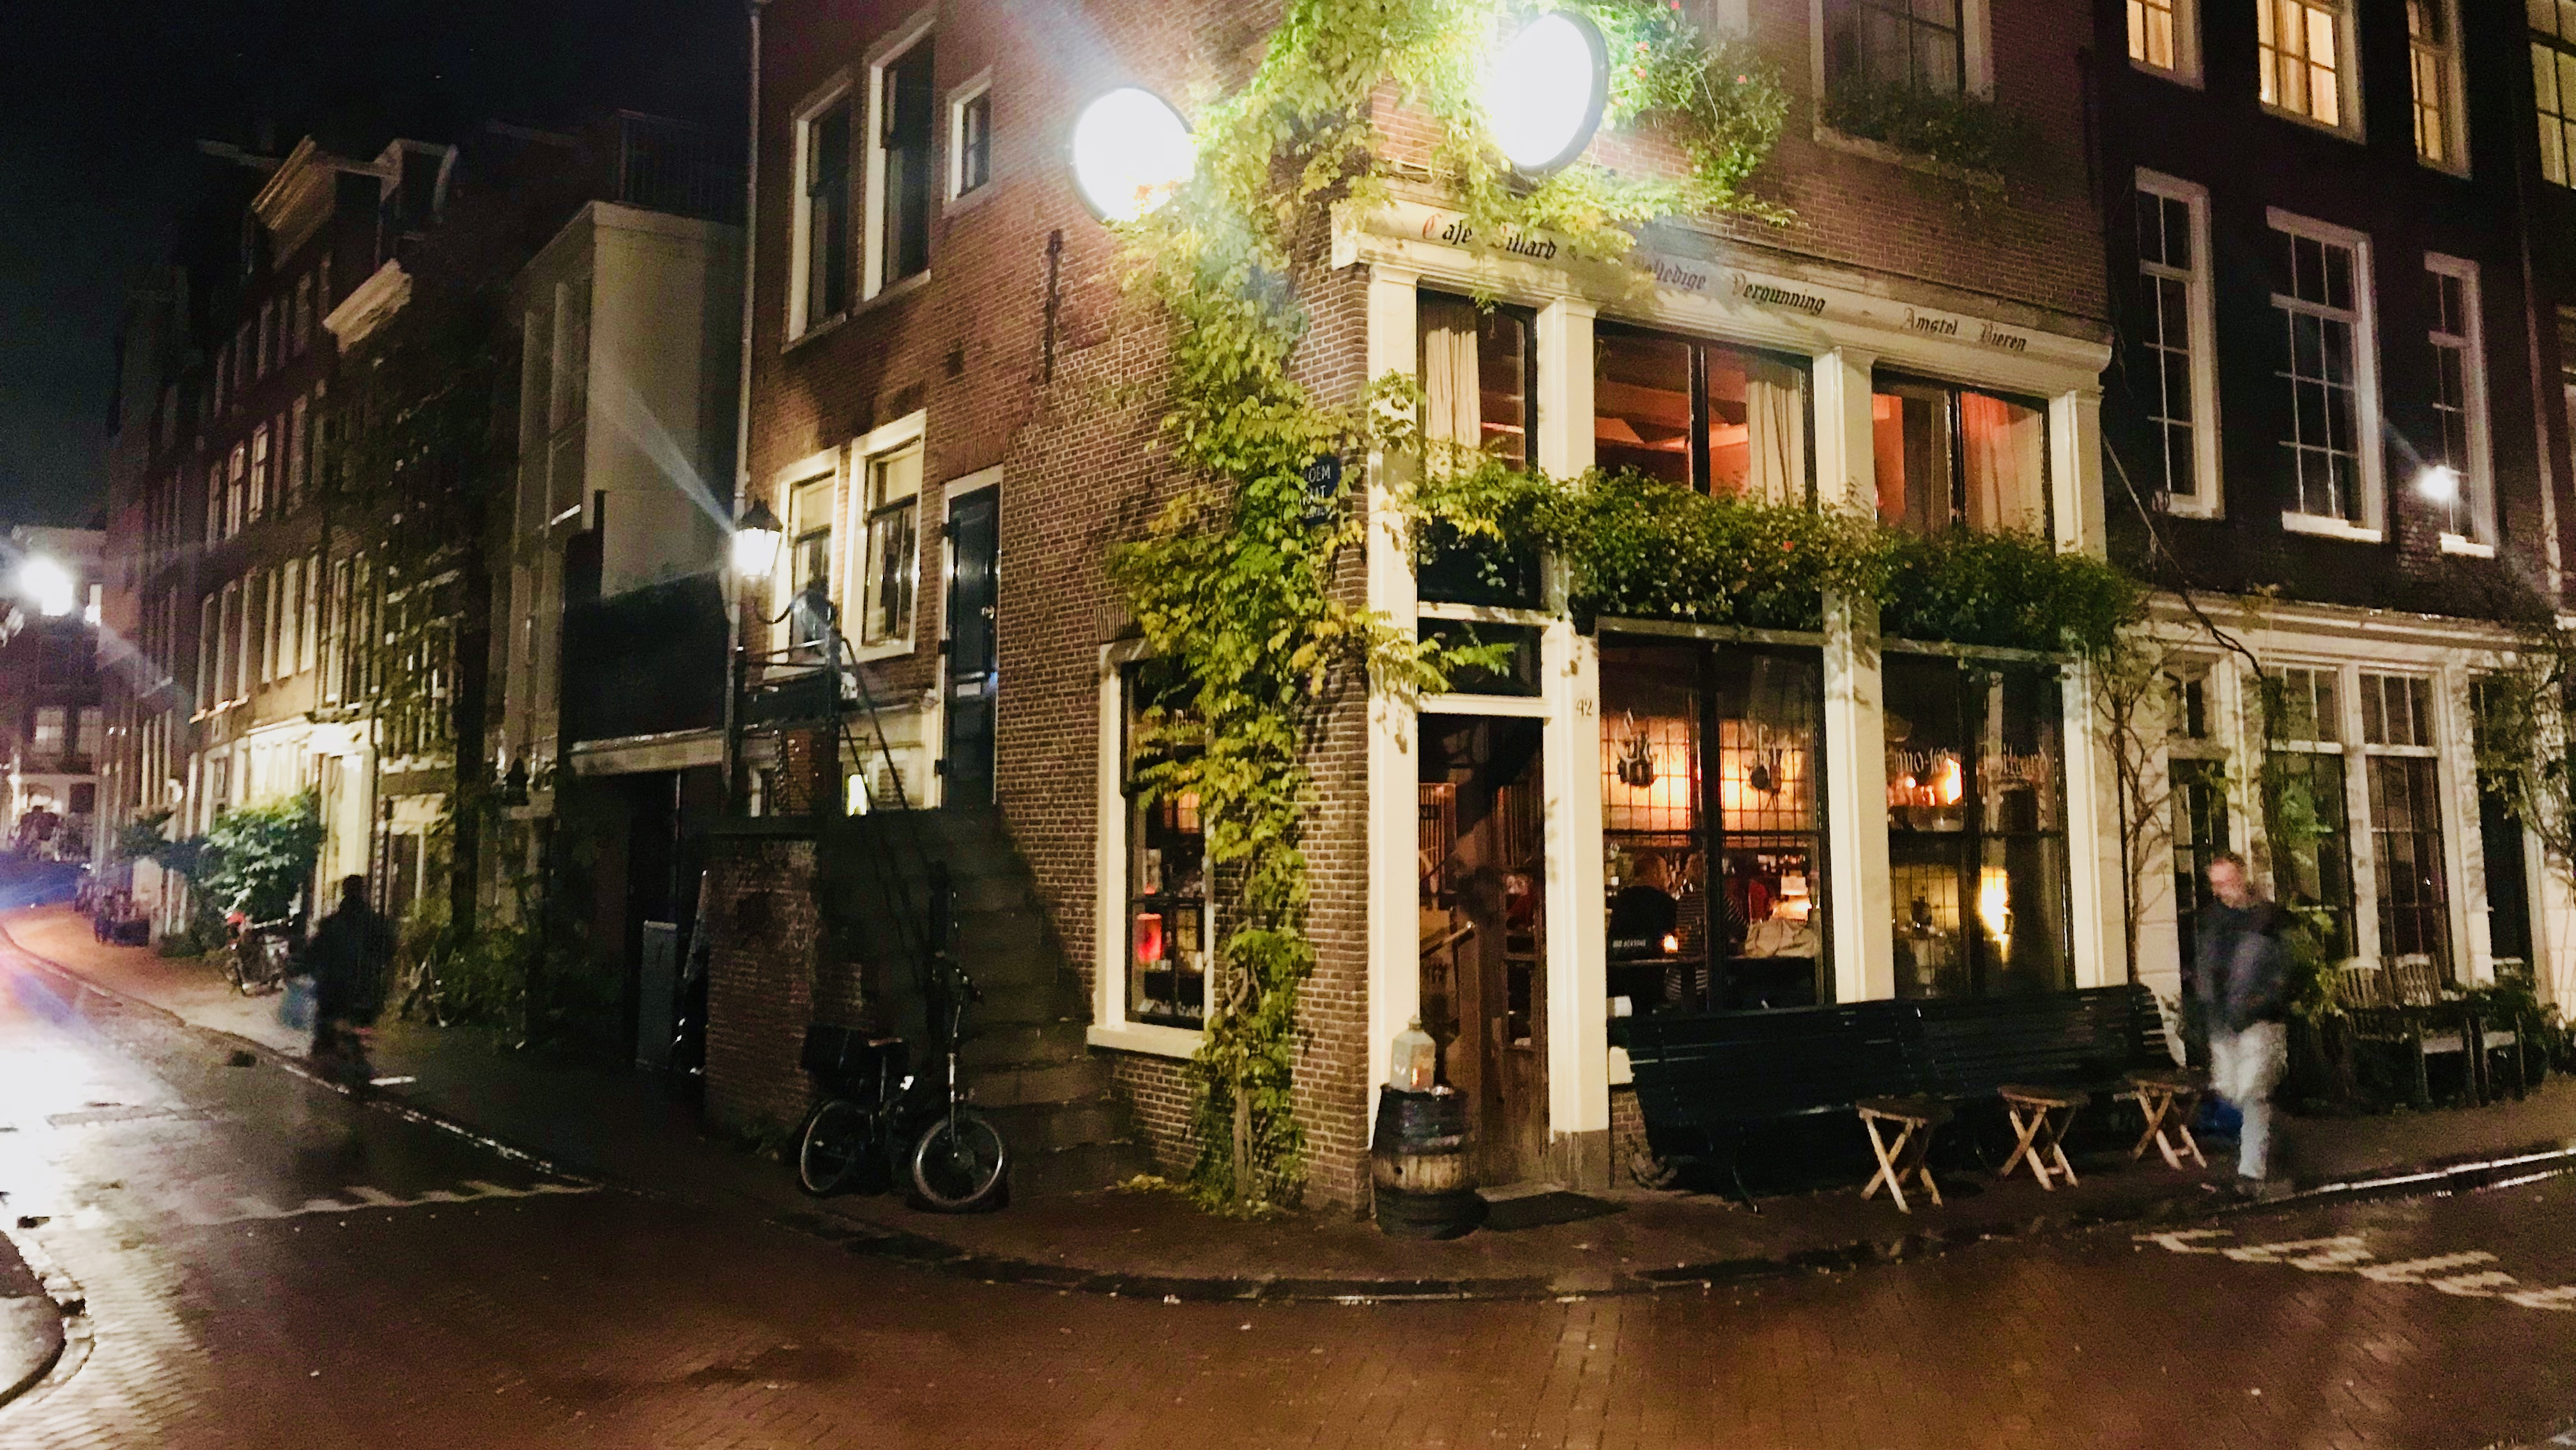 Exterior of one of the oldest brown bars in Amsterdam, Café Chris.